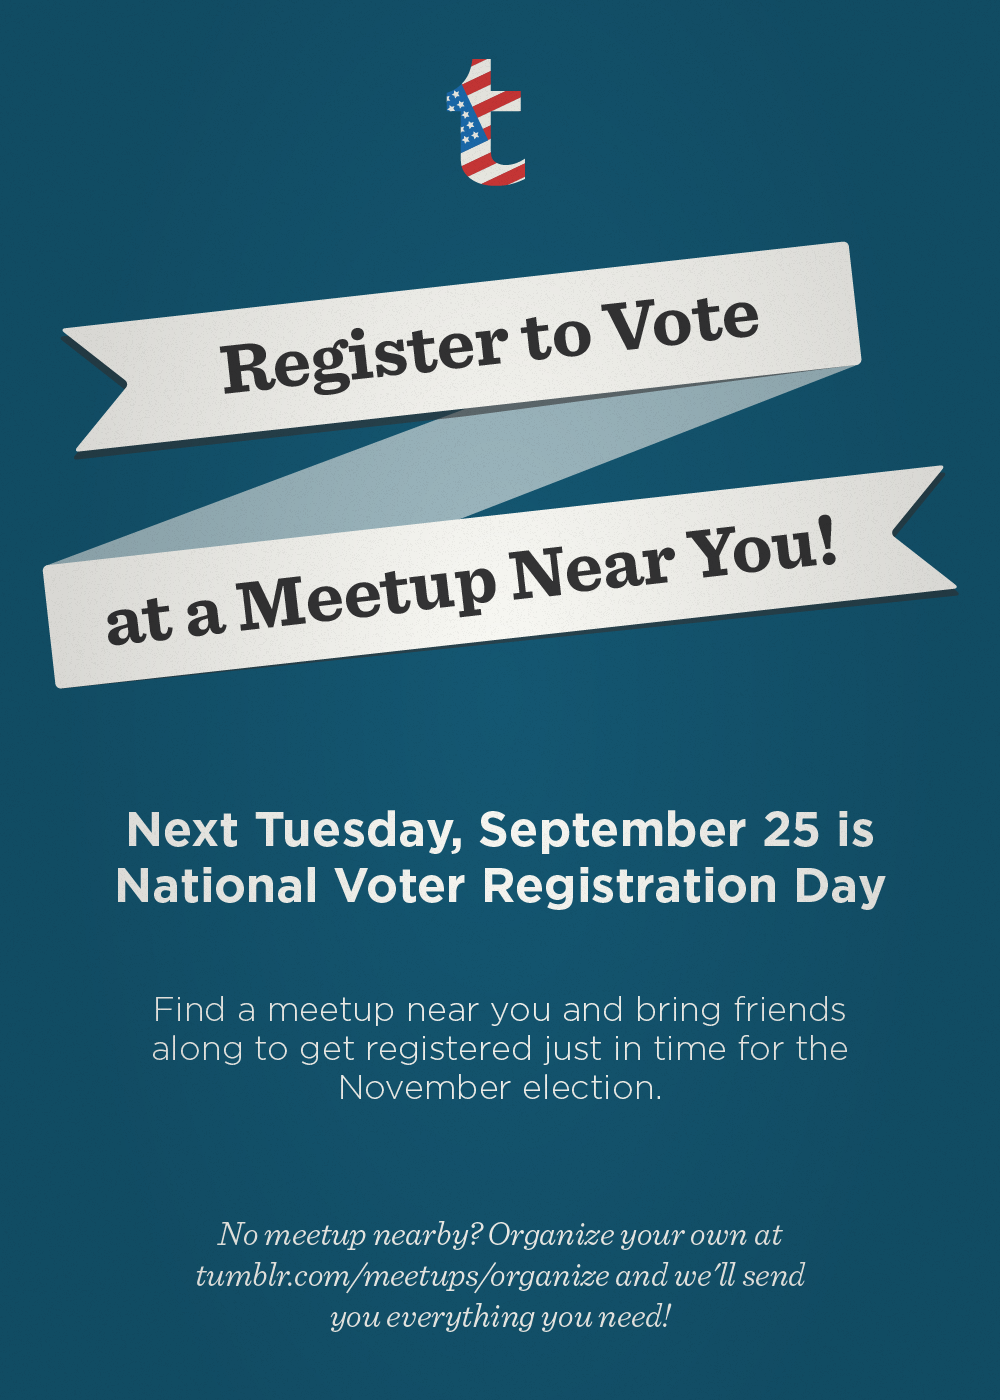 election:  Next Tuesday, September 25, is National Voter Registration Day  In 2008, 6 million Americans didn't vote because they missed a registration deadline or didn't know how to register. In 2012, resources to educate and mobilize voters have dwindled, fueling worries that many folks - especially young people - won't turn out. We want to make sure no one is left out, so we've partnered with volunteers, celebrities, and organizations from all over the country who are hitting the streets on September 25. If you're not registered, or need to renew your registration, check out www.tumblr.com/meetups to find an event near you. If you're already registered - or if there's no event near you - organize your own NVRD meetup at www.tumblr.com/meetups/organize. We'll send you everything you need! For more info, follow NVRD on Tumblr and look for the tag 925NVRD.